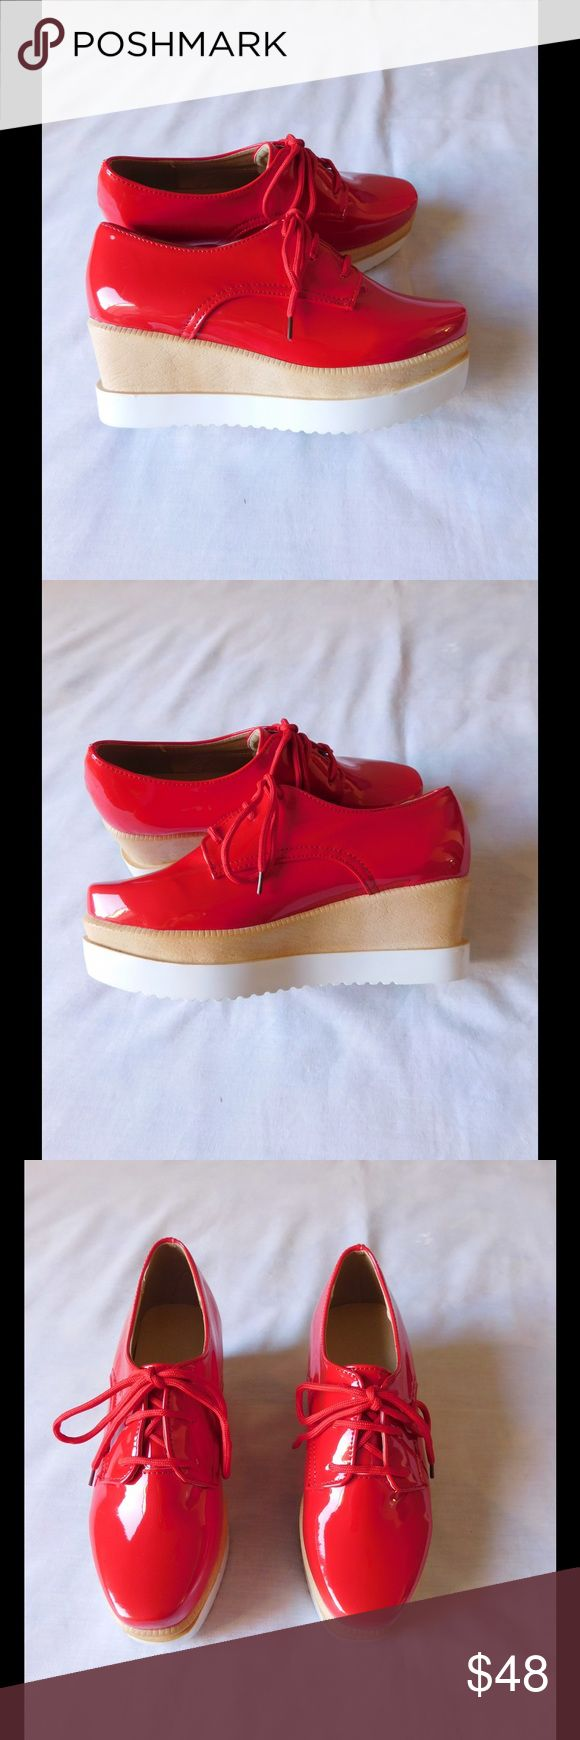 Divine Red Platform Shoes W/Tan & White Sole NWOT. These pair of shoes are really cute and exclusive. Super comfy. Gorgeous colors and exclusive design. Size 7/8 - Save $$$ on bundles. Shoes Platforms